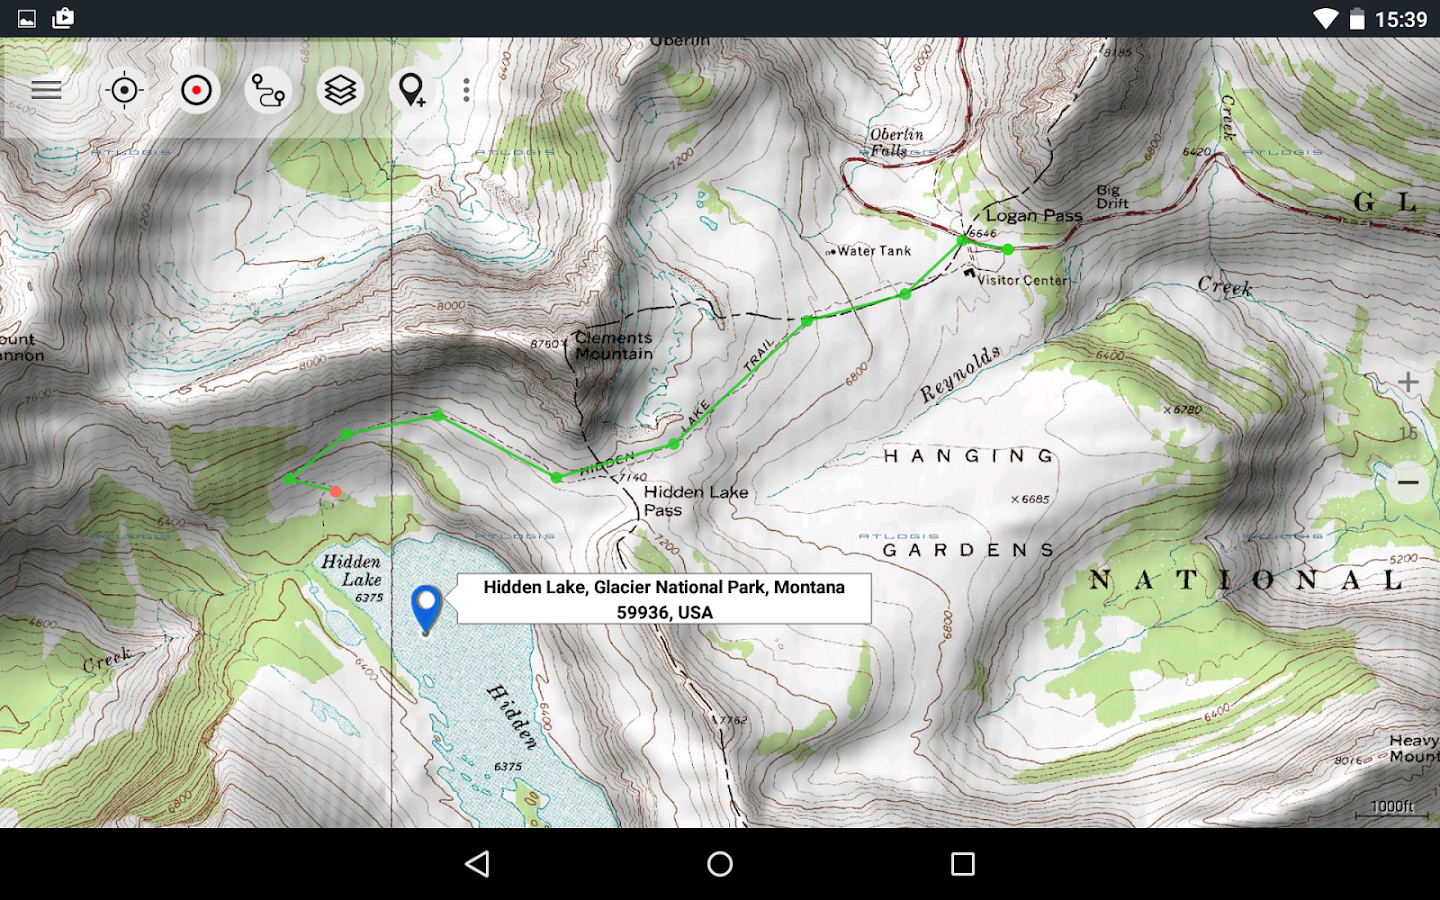 US Topo Maps Pro APK Download Android Cats - Us topographic map